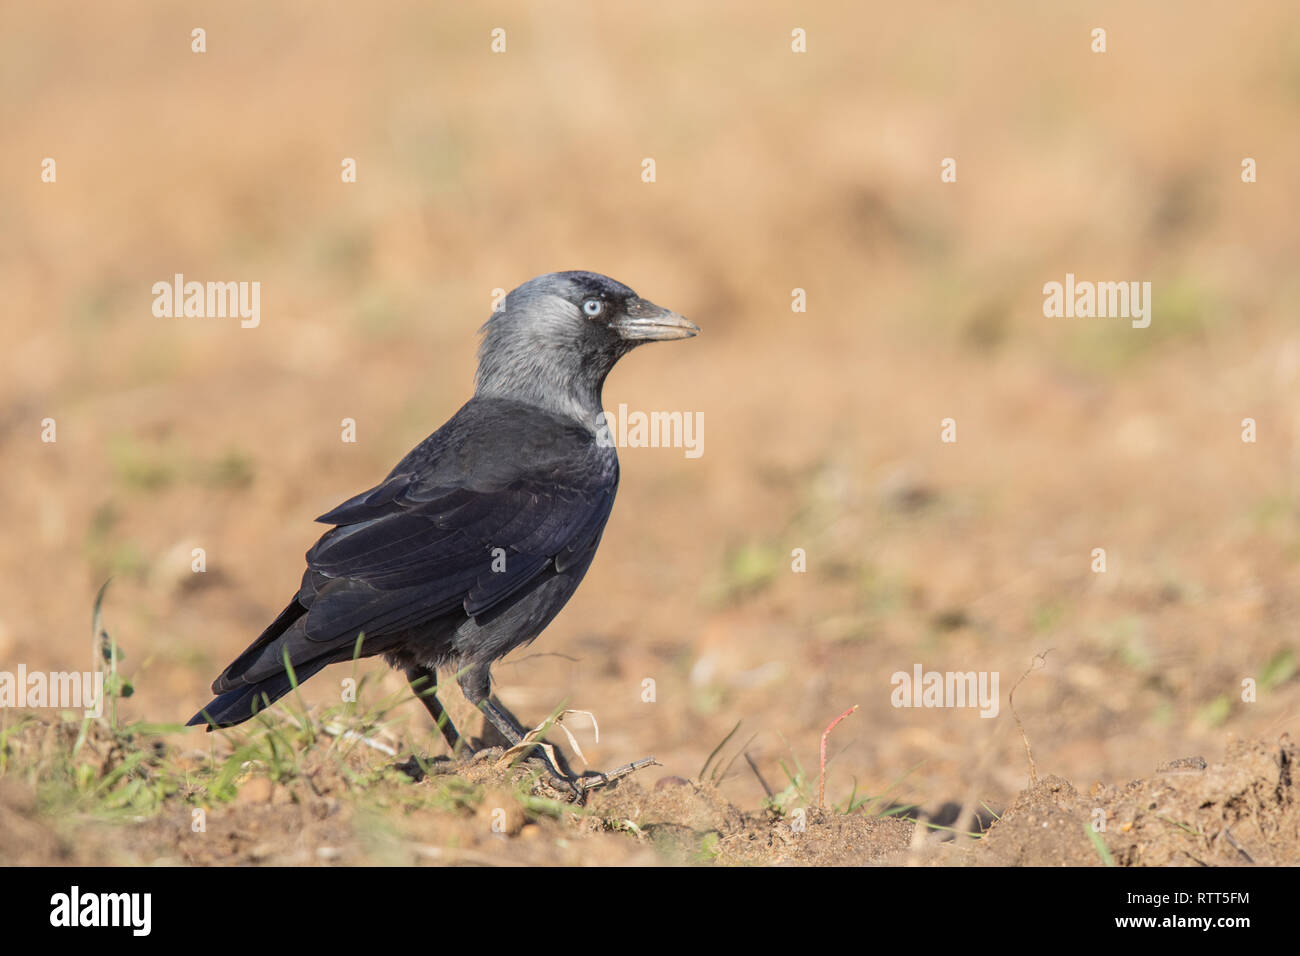 A western jackdaw (Coloeus monedula) at the Algrave - Stock Image